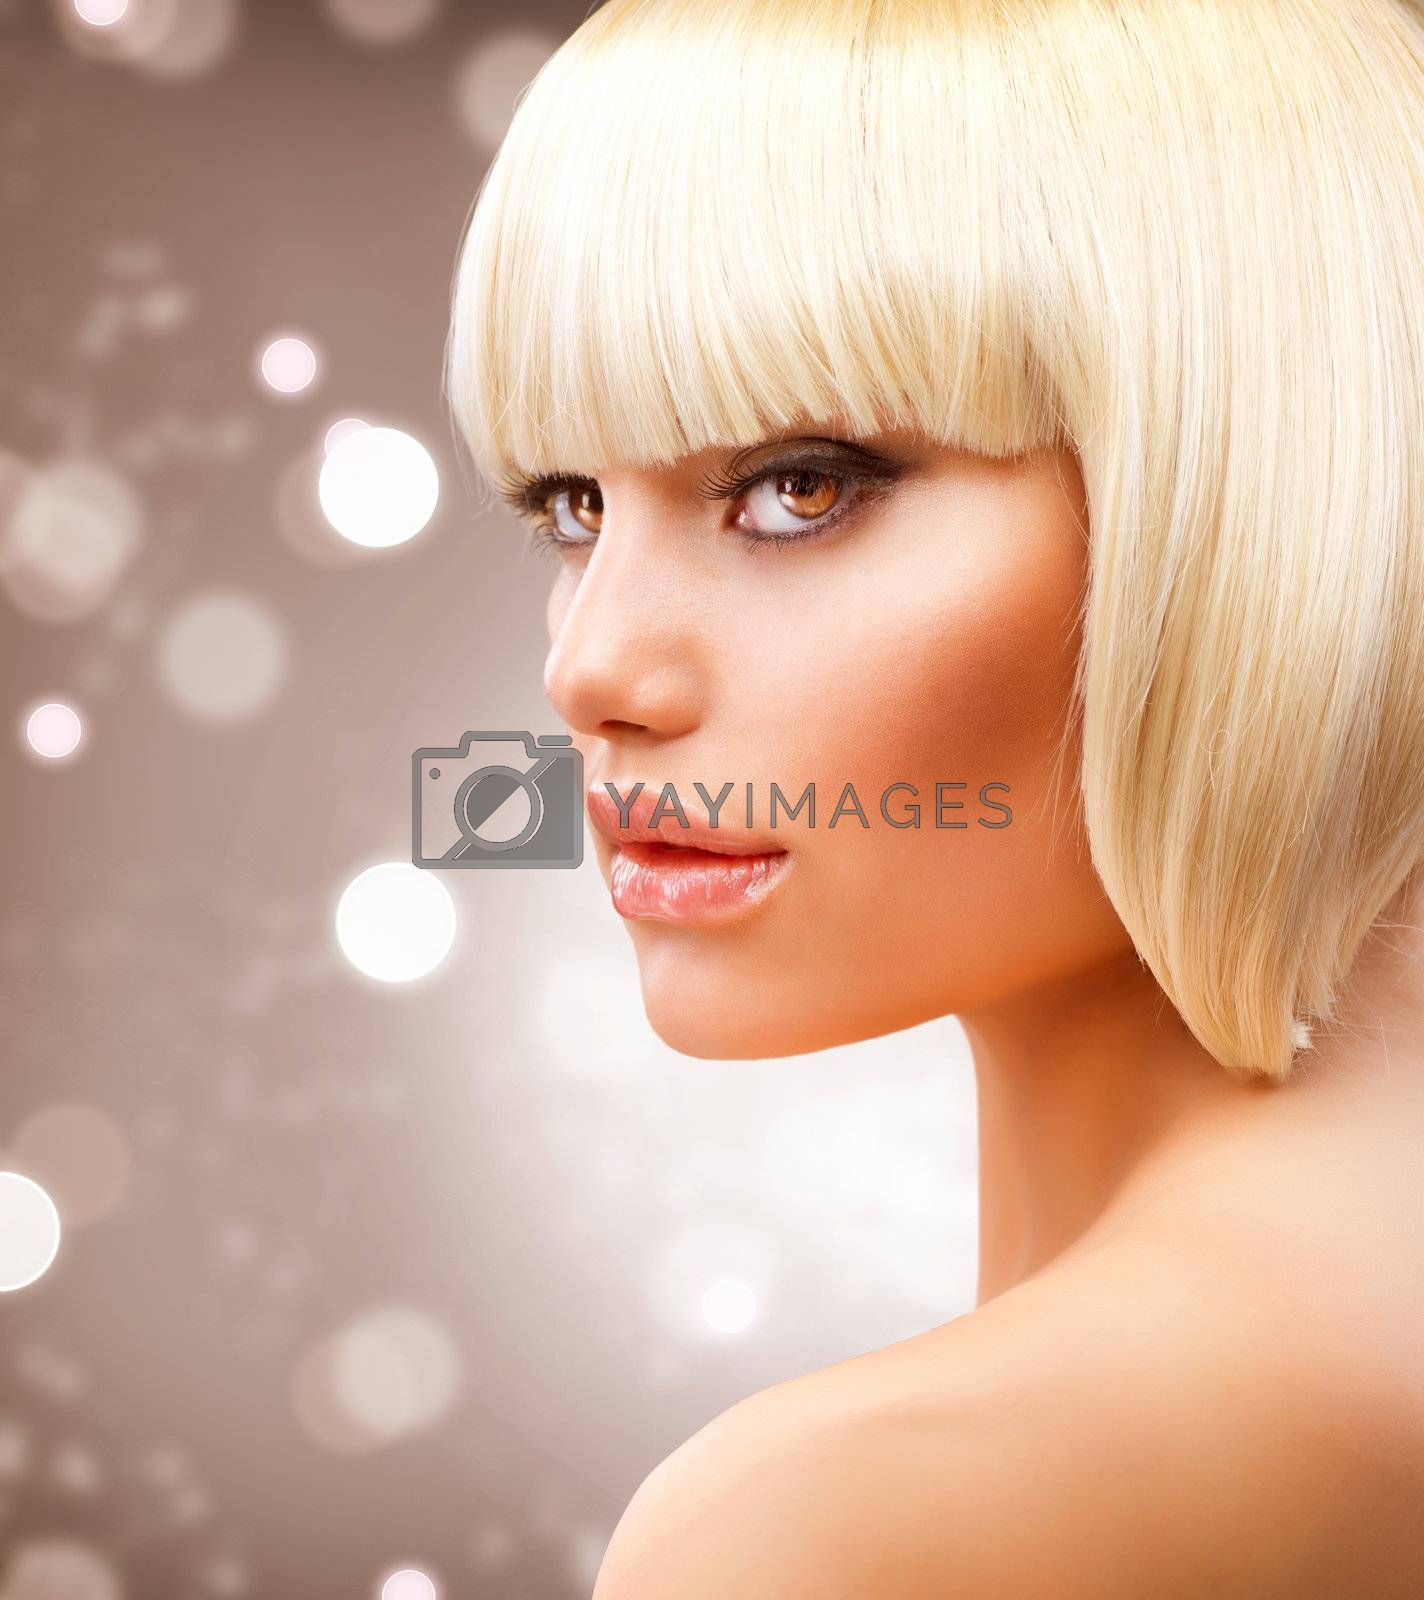 Haircut. Beautiful Girl with Healthy Short Blond Hair  by SubbotinaA